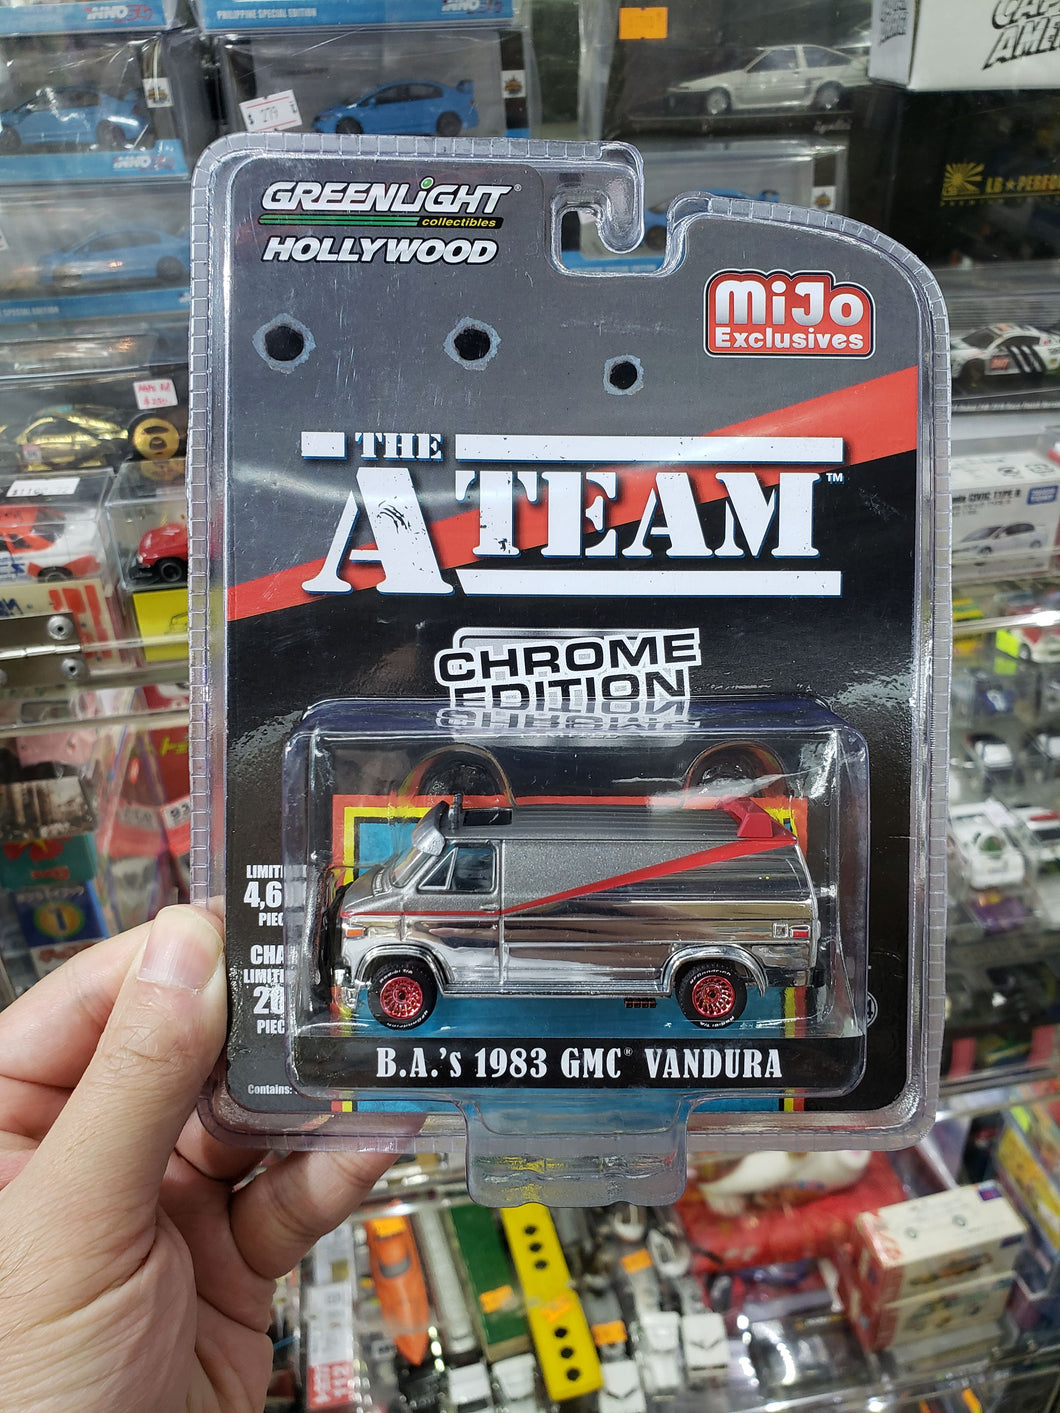 Greenlight Hollywood Mijo Exclusive The A Team Chrome Edition B.A.'s 1983 GMC Vandura